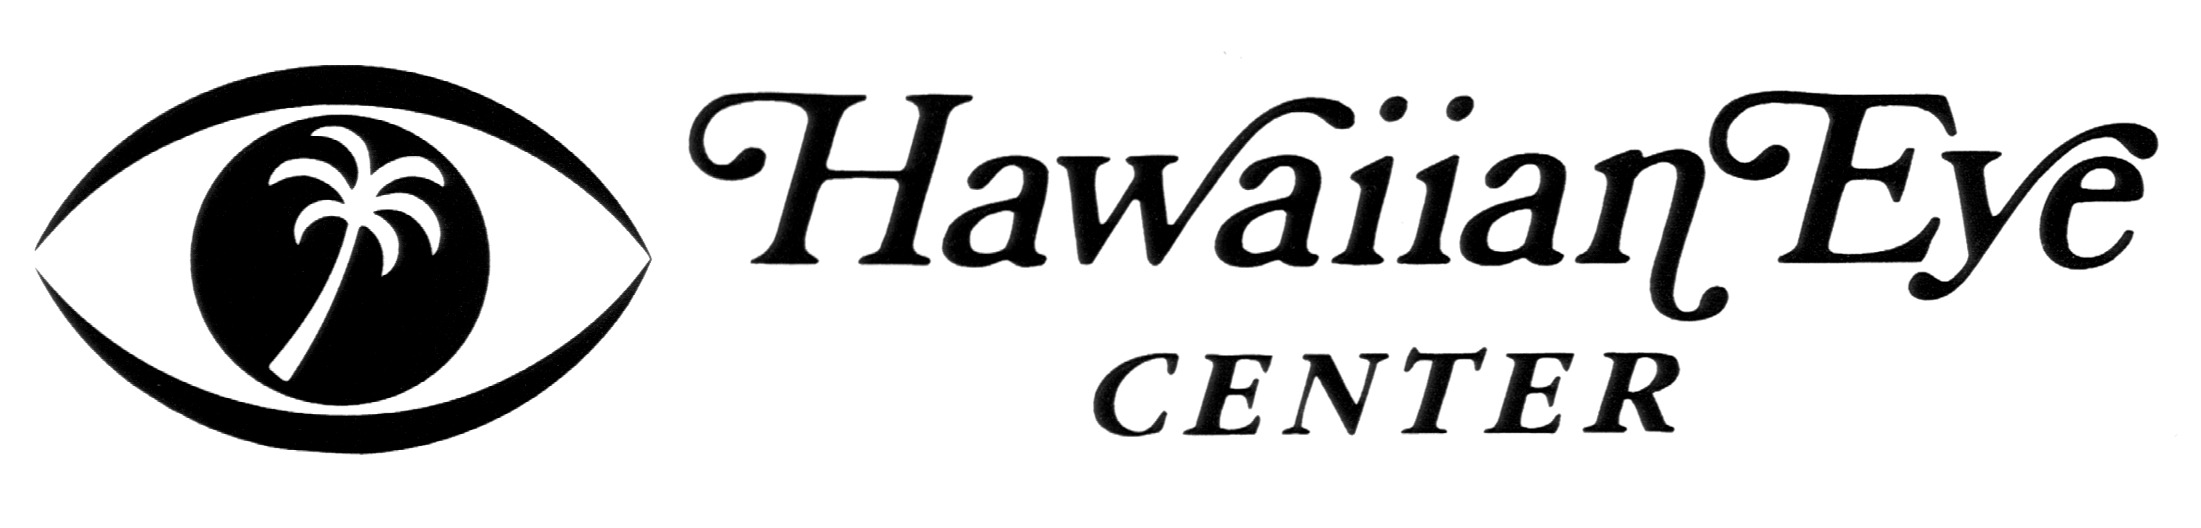 Hawaiian Eye Center